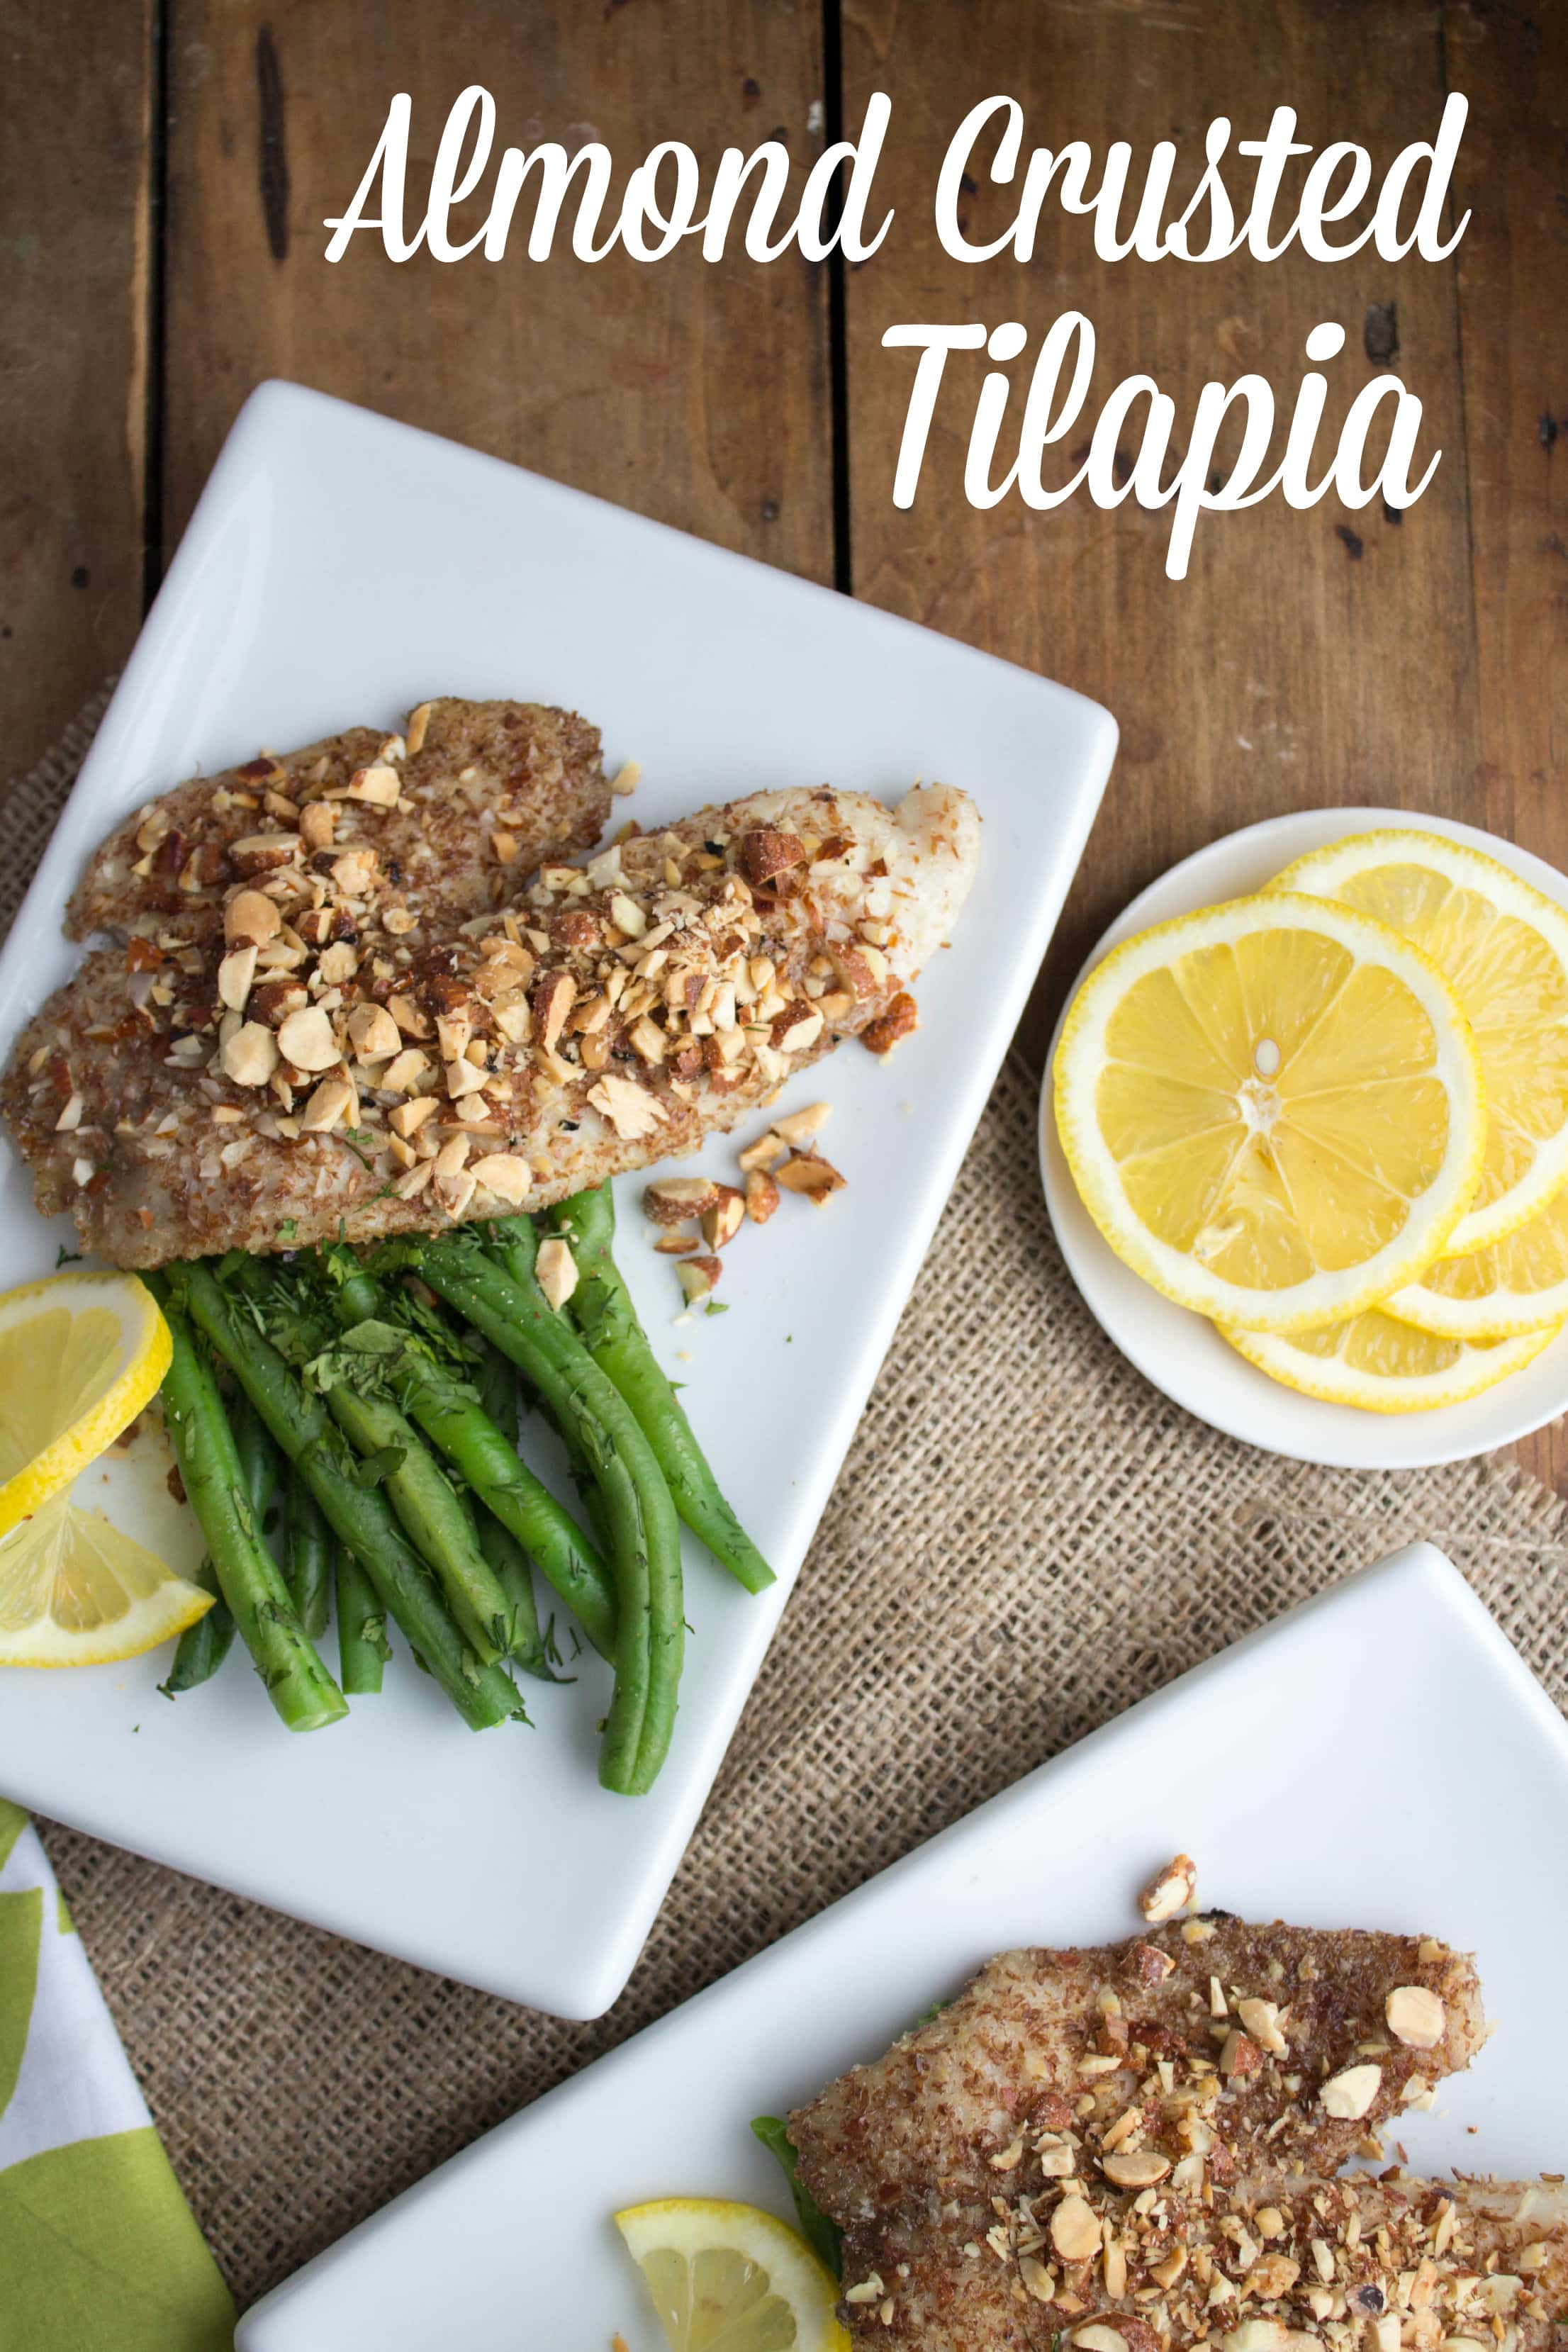 Tilapia recipes easy and quick